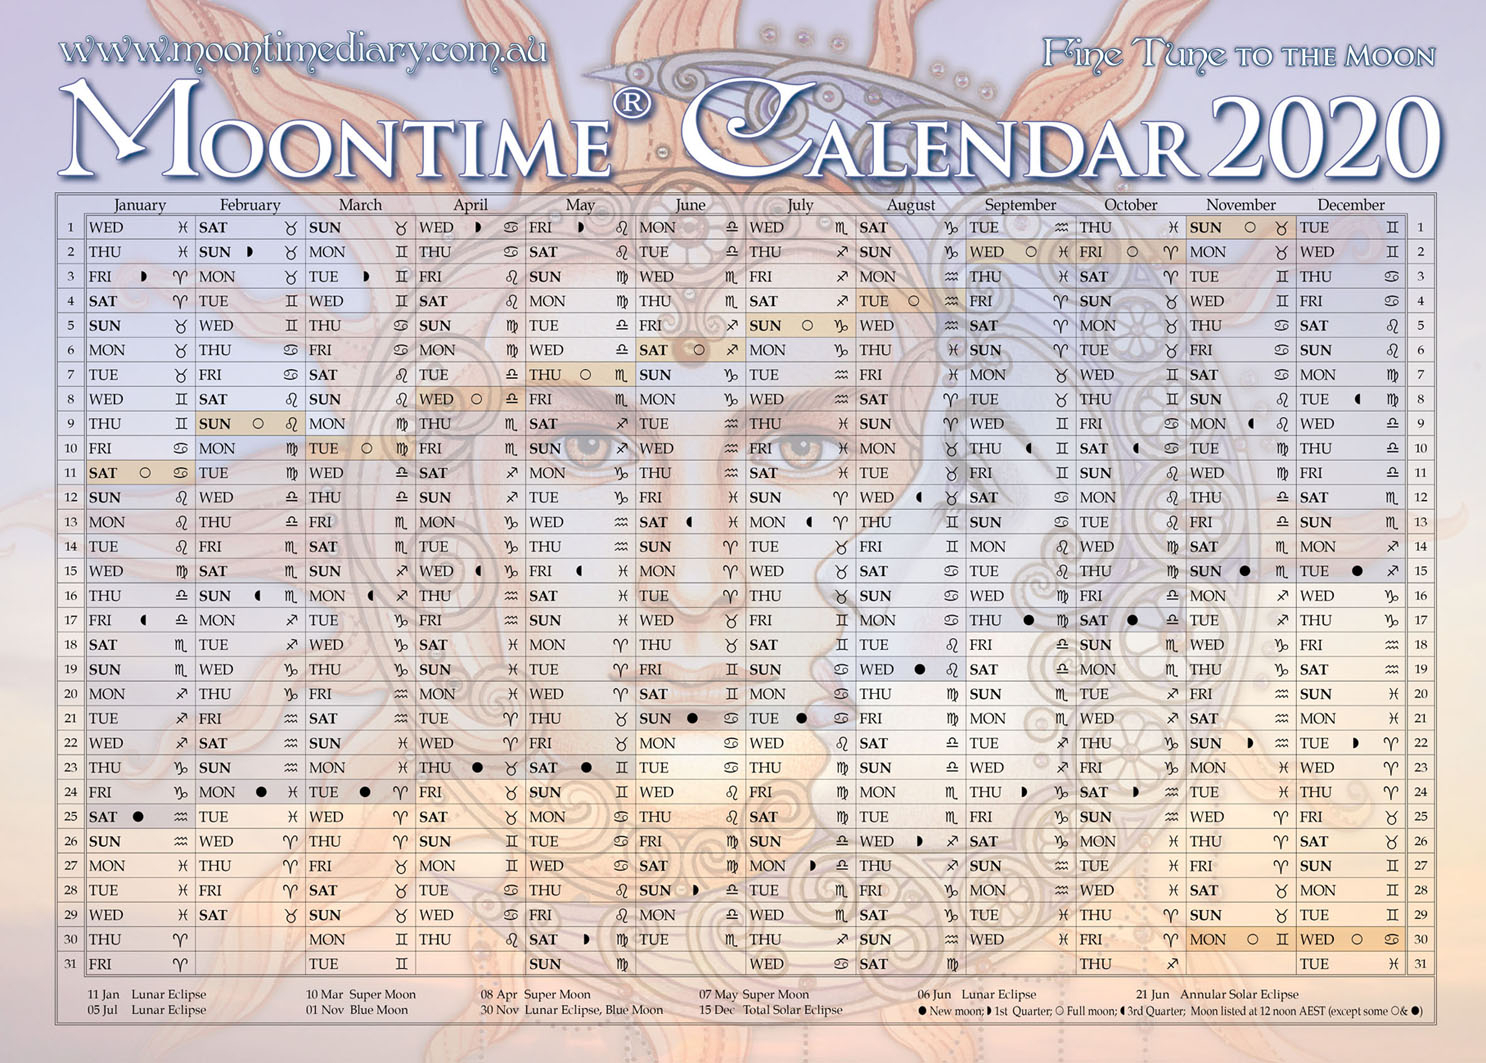 Moontime Diary Moon Chart Lunar Calendar Moontime Diary regarding Lunar Haircut Calendar 2020